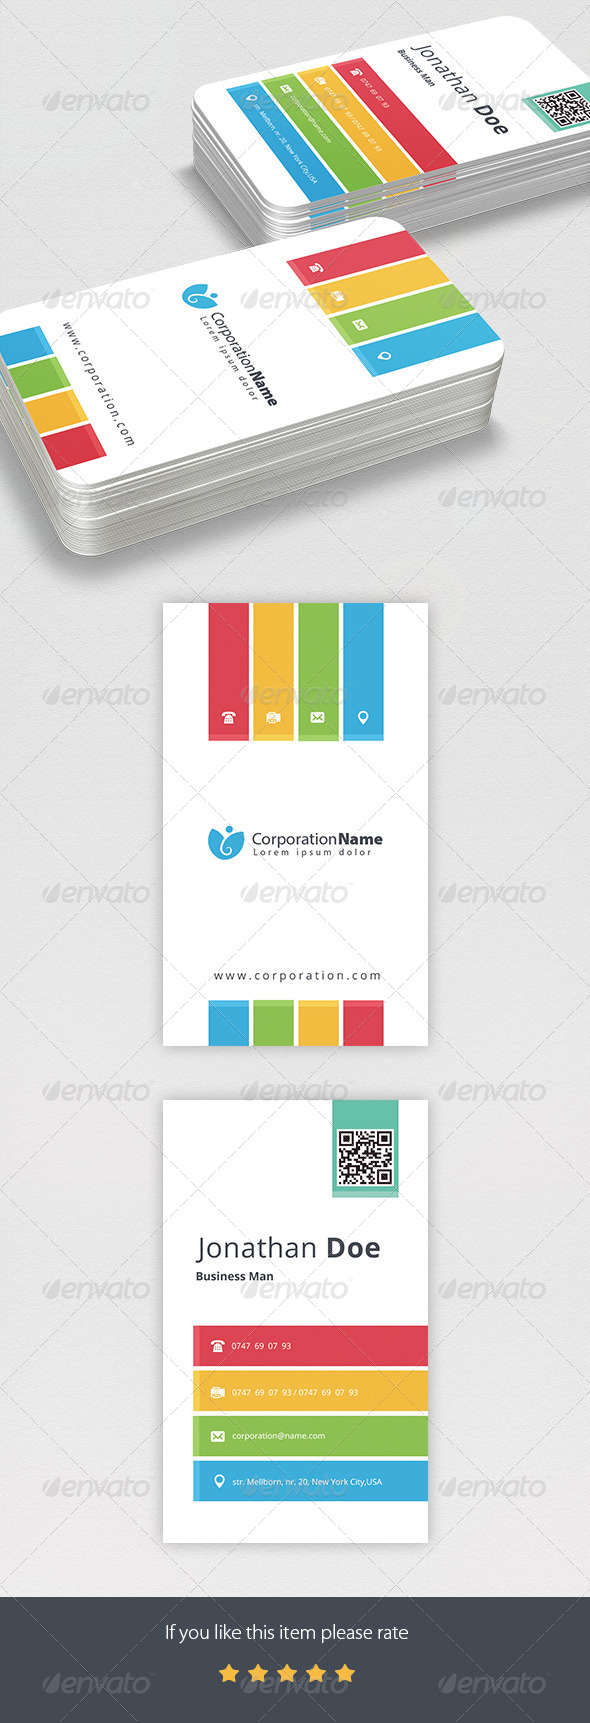 GraphicRiver Corporate Business Card 6967561